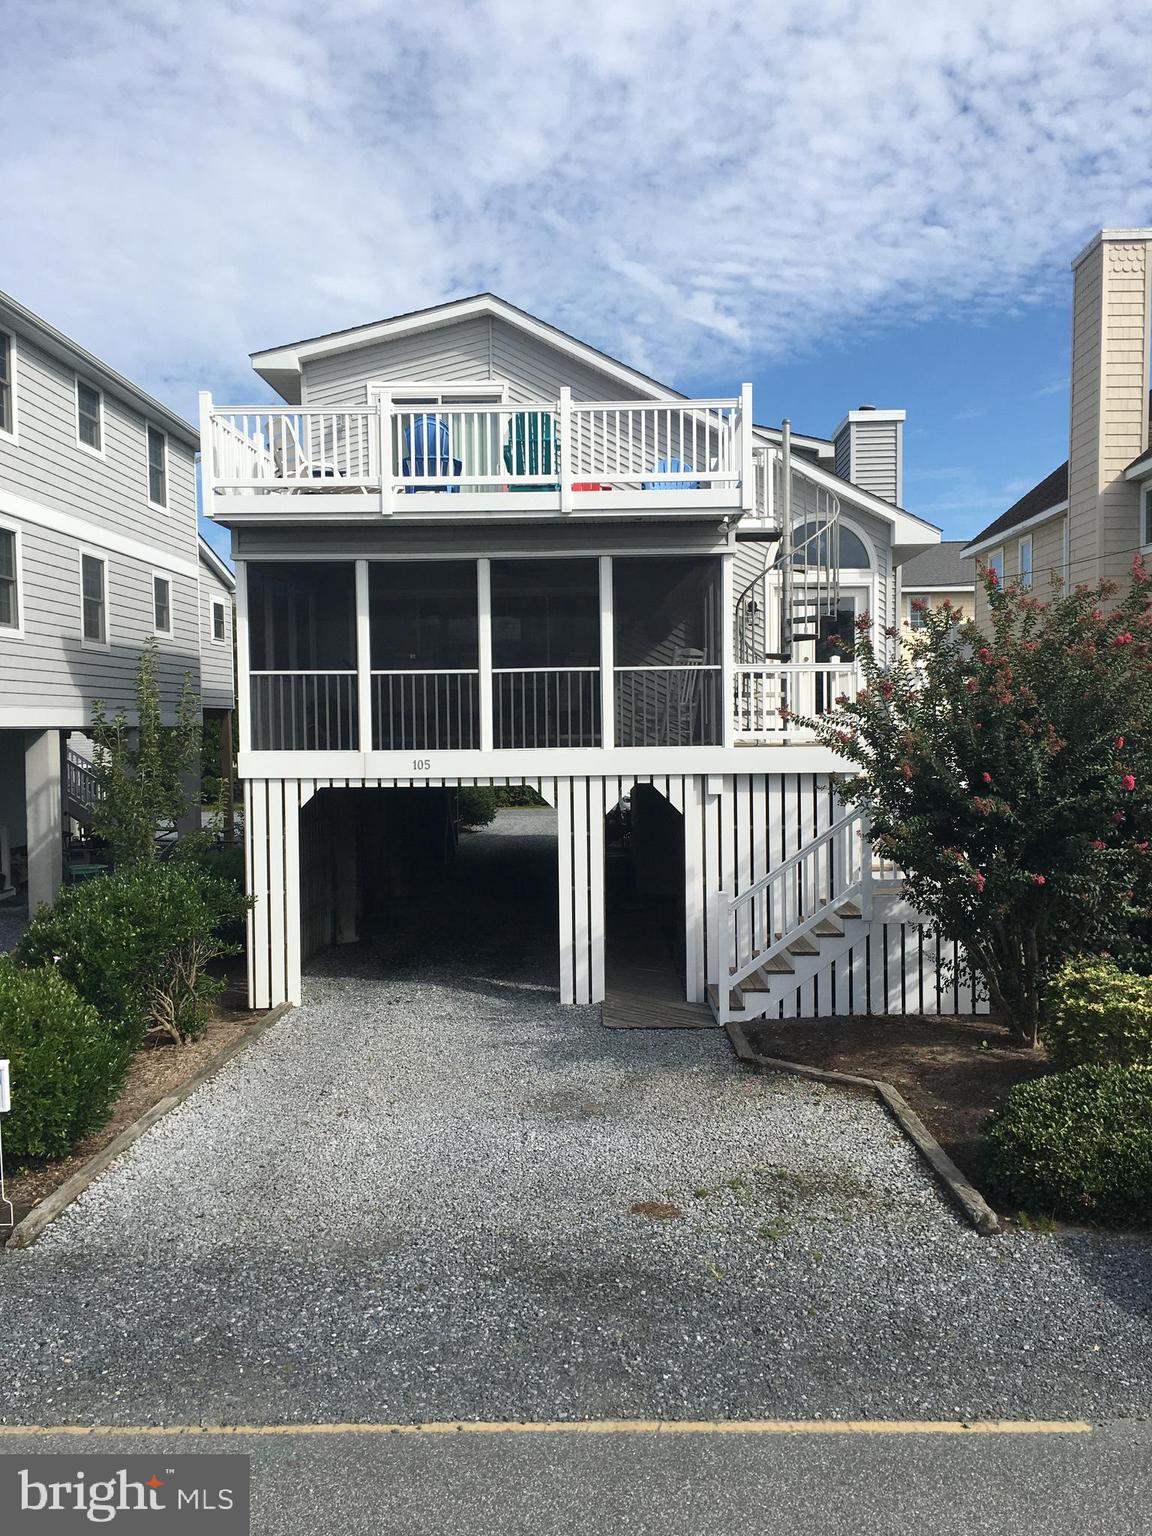 """Attention Investors or Home Buyers. This beautifully maintained, single family home is so close to the beach, you can hear the waves.  This comfortable beach home has 5 Bedrooms and 4 Full Bathrooms, multiple decks and modern touches. The property is located steps from the Beach, Boardwalk and all amenities the town of Bethany has to offer.  This home will not last long, as it has a proven rental history and is on one of  the premium streets in Bethany Beach.  The property is being sold """"as is"""", fully furnished and ready to be enjoyed by the new owners. Home has over 92k in rentals in 2021.  ************** This home can be shown anytime during the week September 27th- October 1st  It is vacant during this time as a  full time rental during the summer and into the fall the home is rented for two weeks from October 2nd thru October 16th and can be shown on Saturdays 10/2 and Saturday 10/19 from 11am to 2pm . View this home and take advantage  of this great investment opportunity. ************************* property , centrally located in downtown Bethany Beach . ***********"""